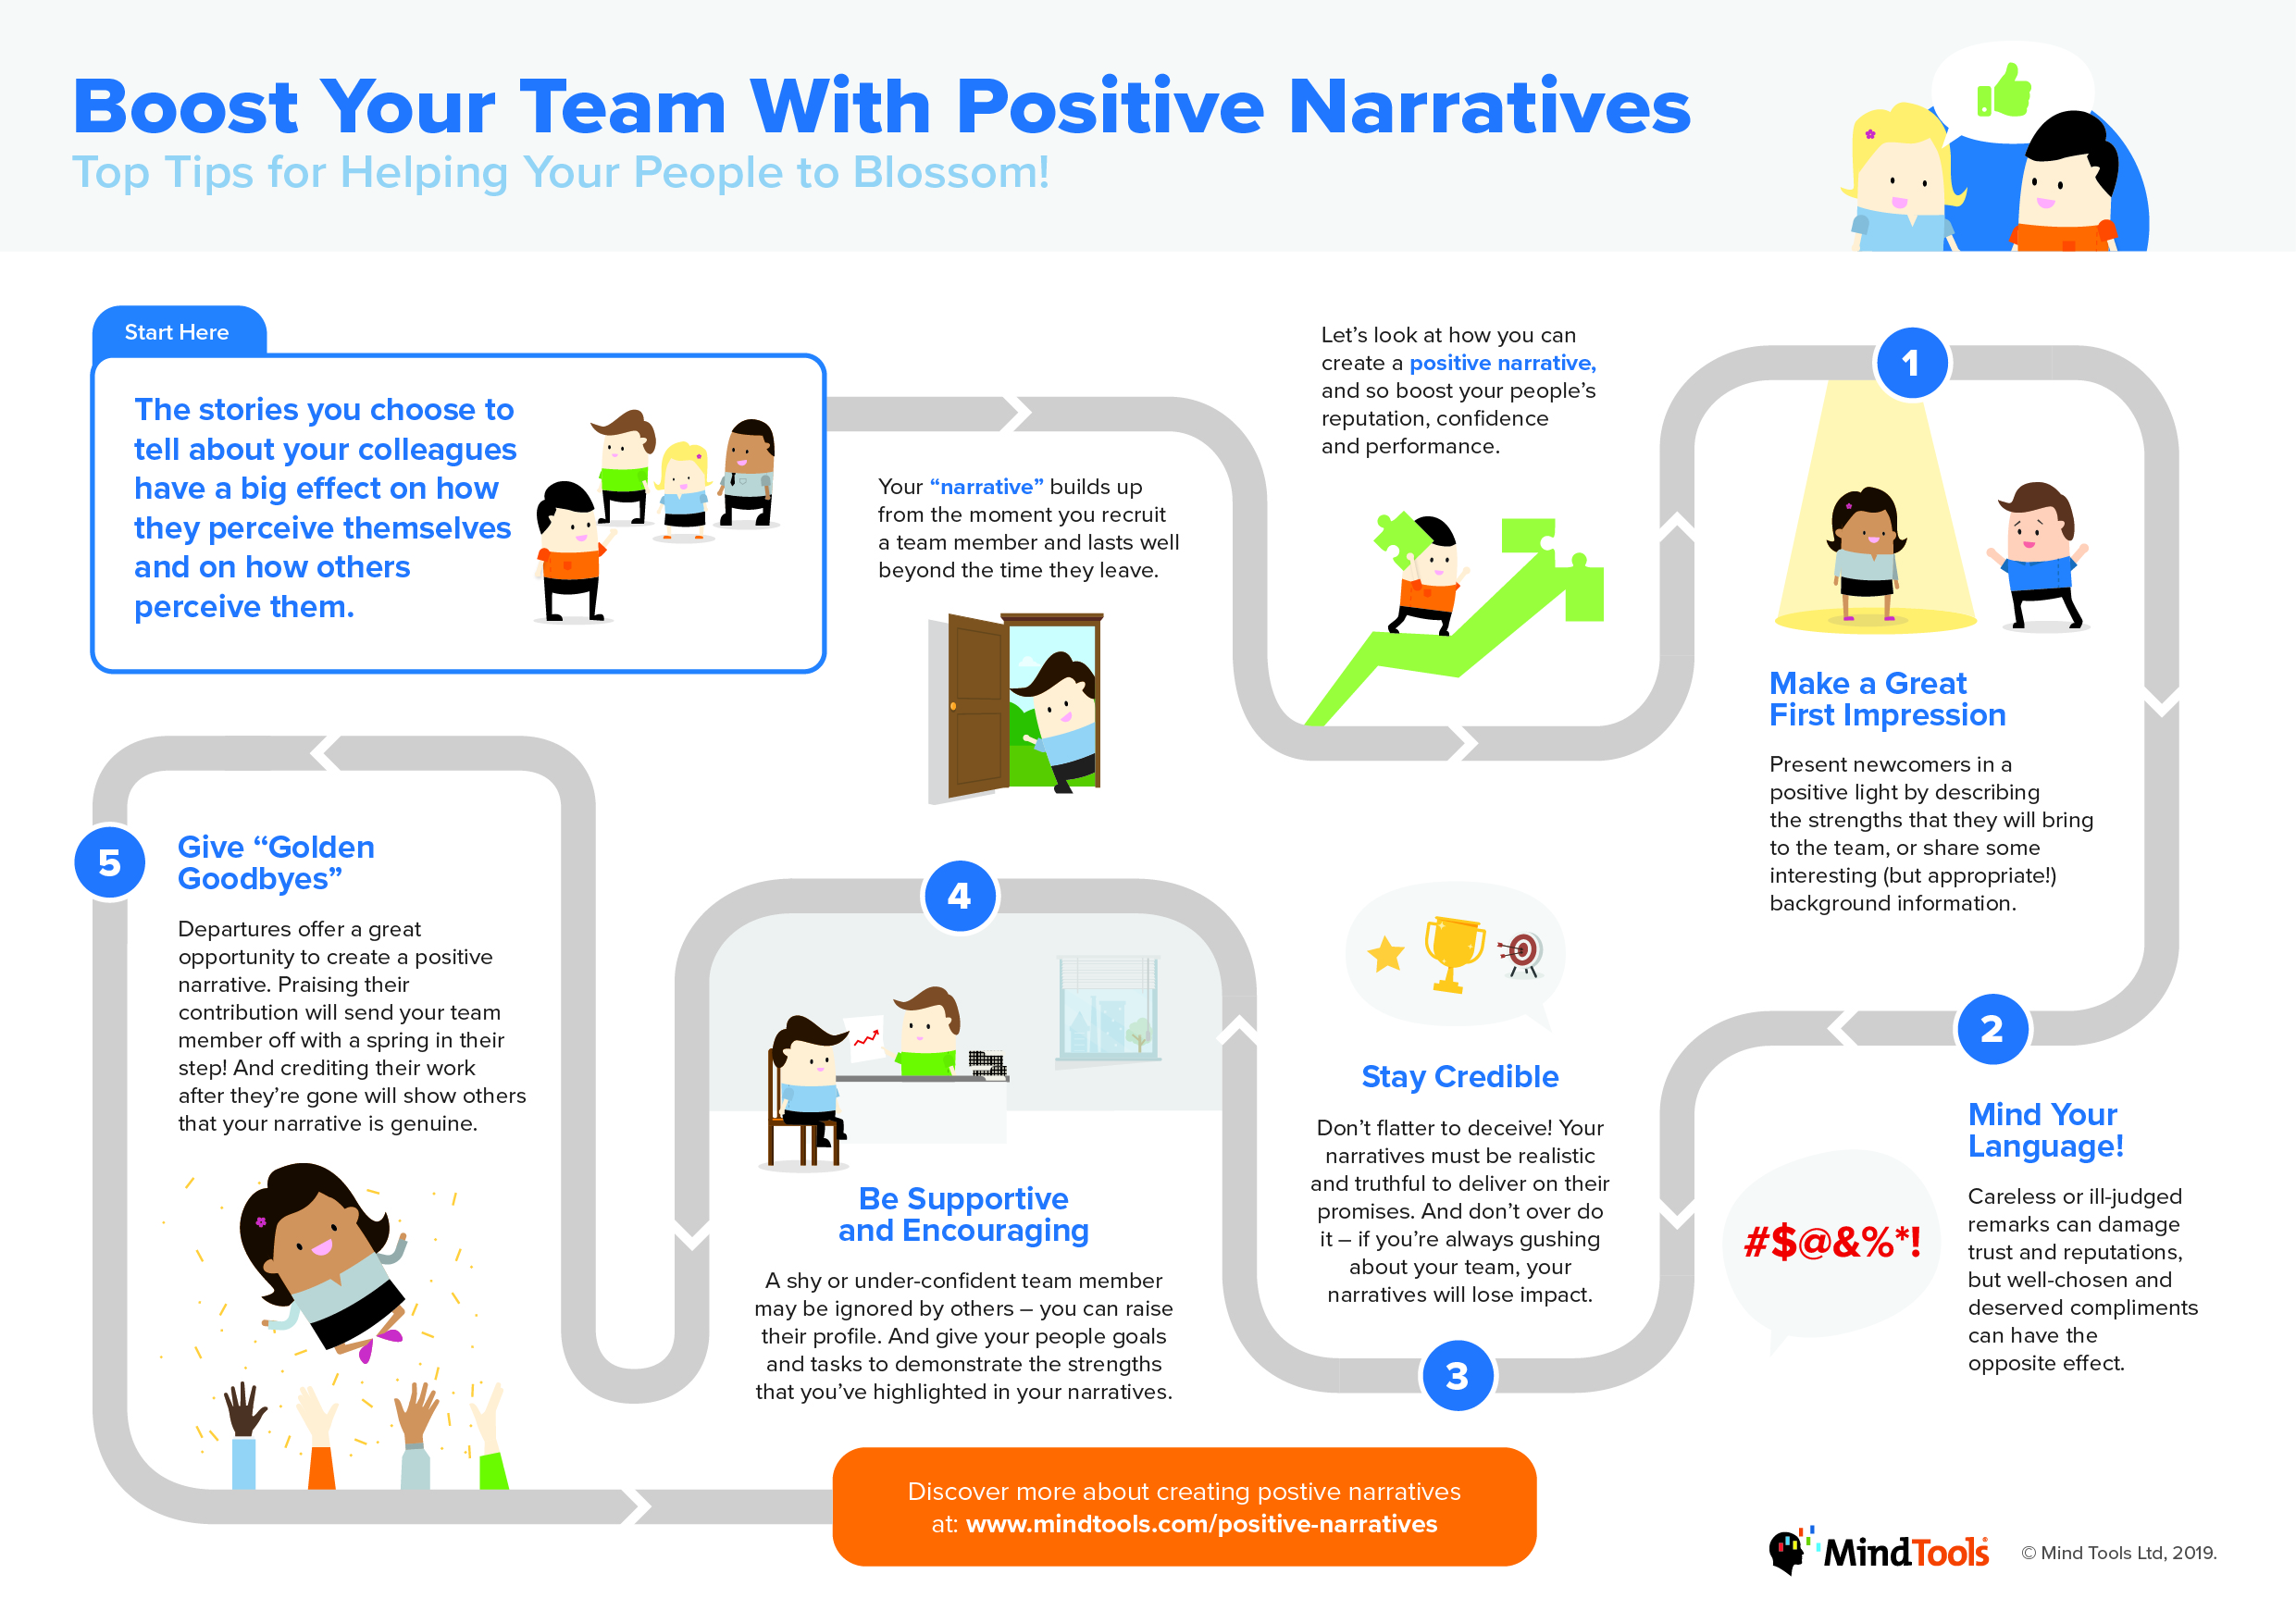 Boost Your Team With Positive Narratives